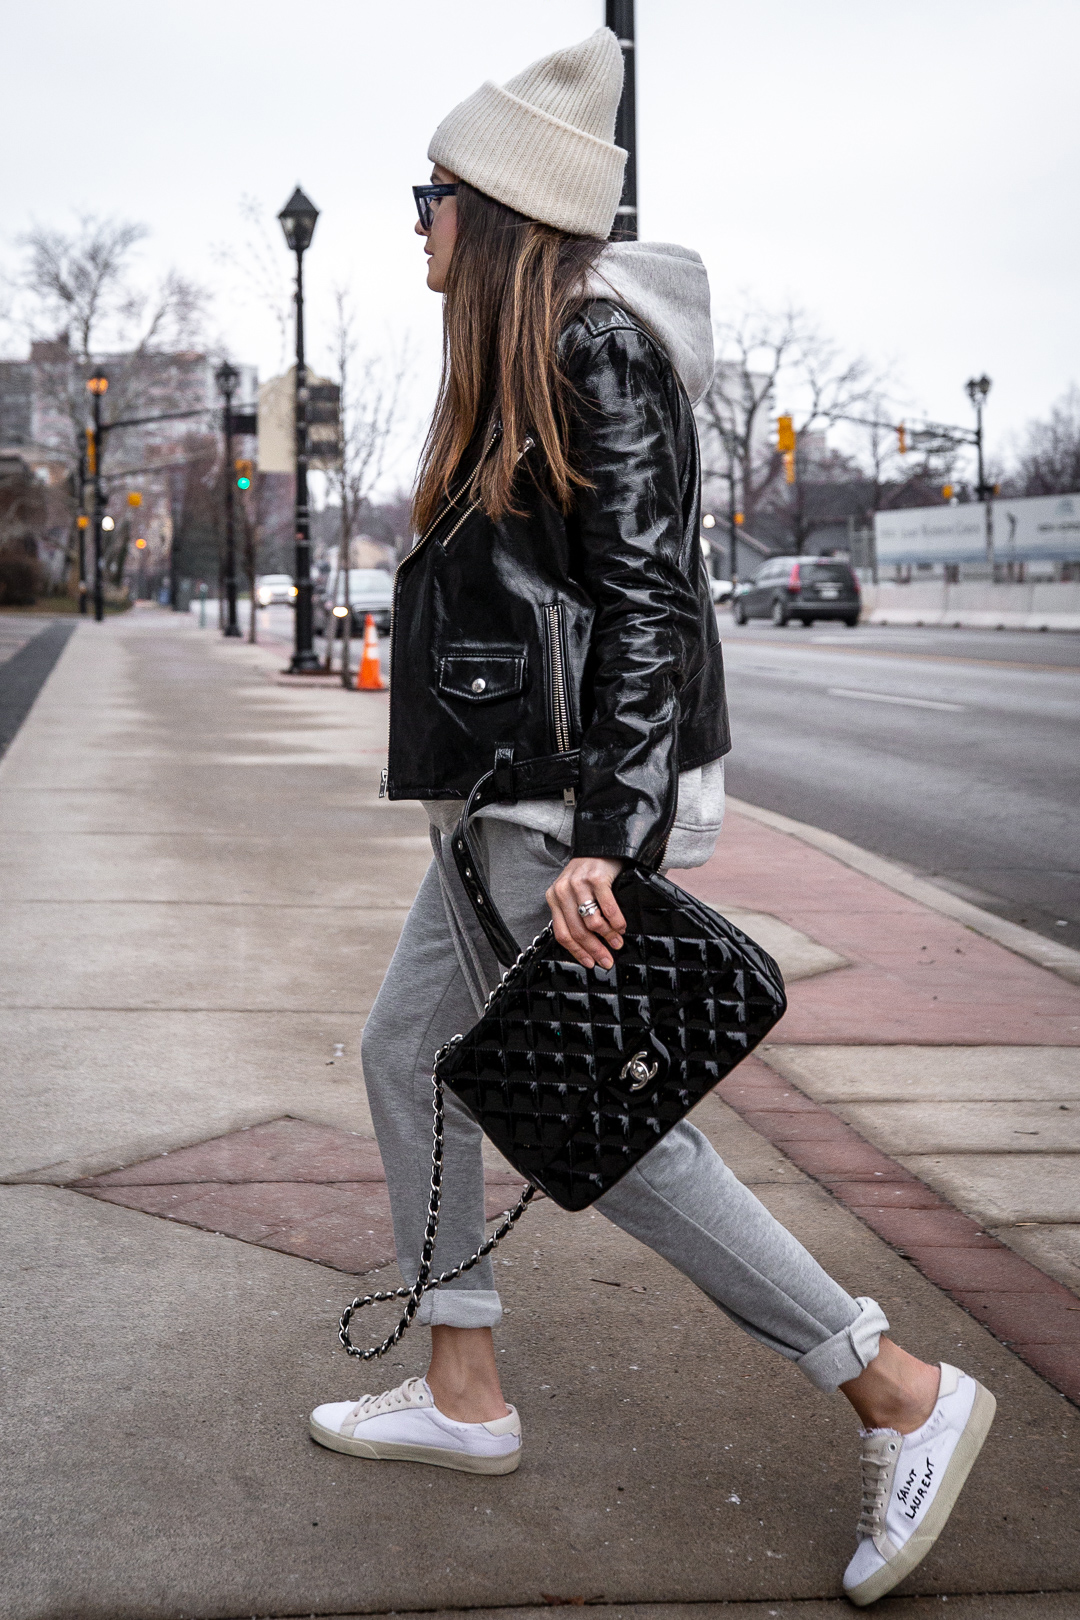 Nathalie Martin - IRO Paris patent leather moto jacket, Zara sweatsuit, grey hoodie and sweatpants, Saint Laurent white canvas logo sneakers, CHANEL patent leather jumbo flap quilted bag, ACNE studios Pansy face beanie hat - woahstyle.com_5548.jpg